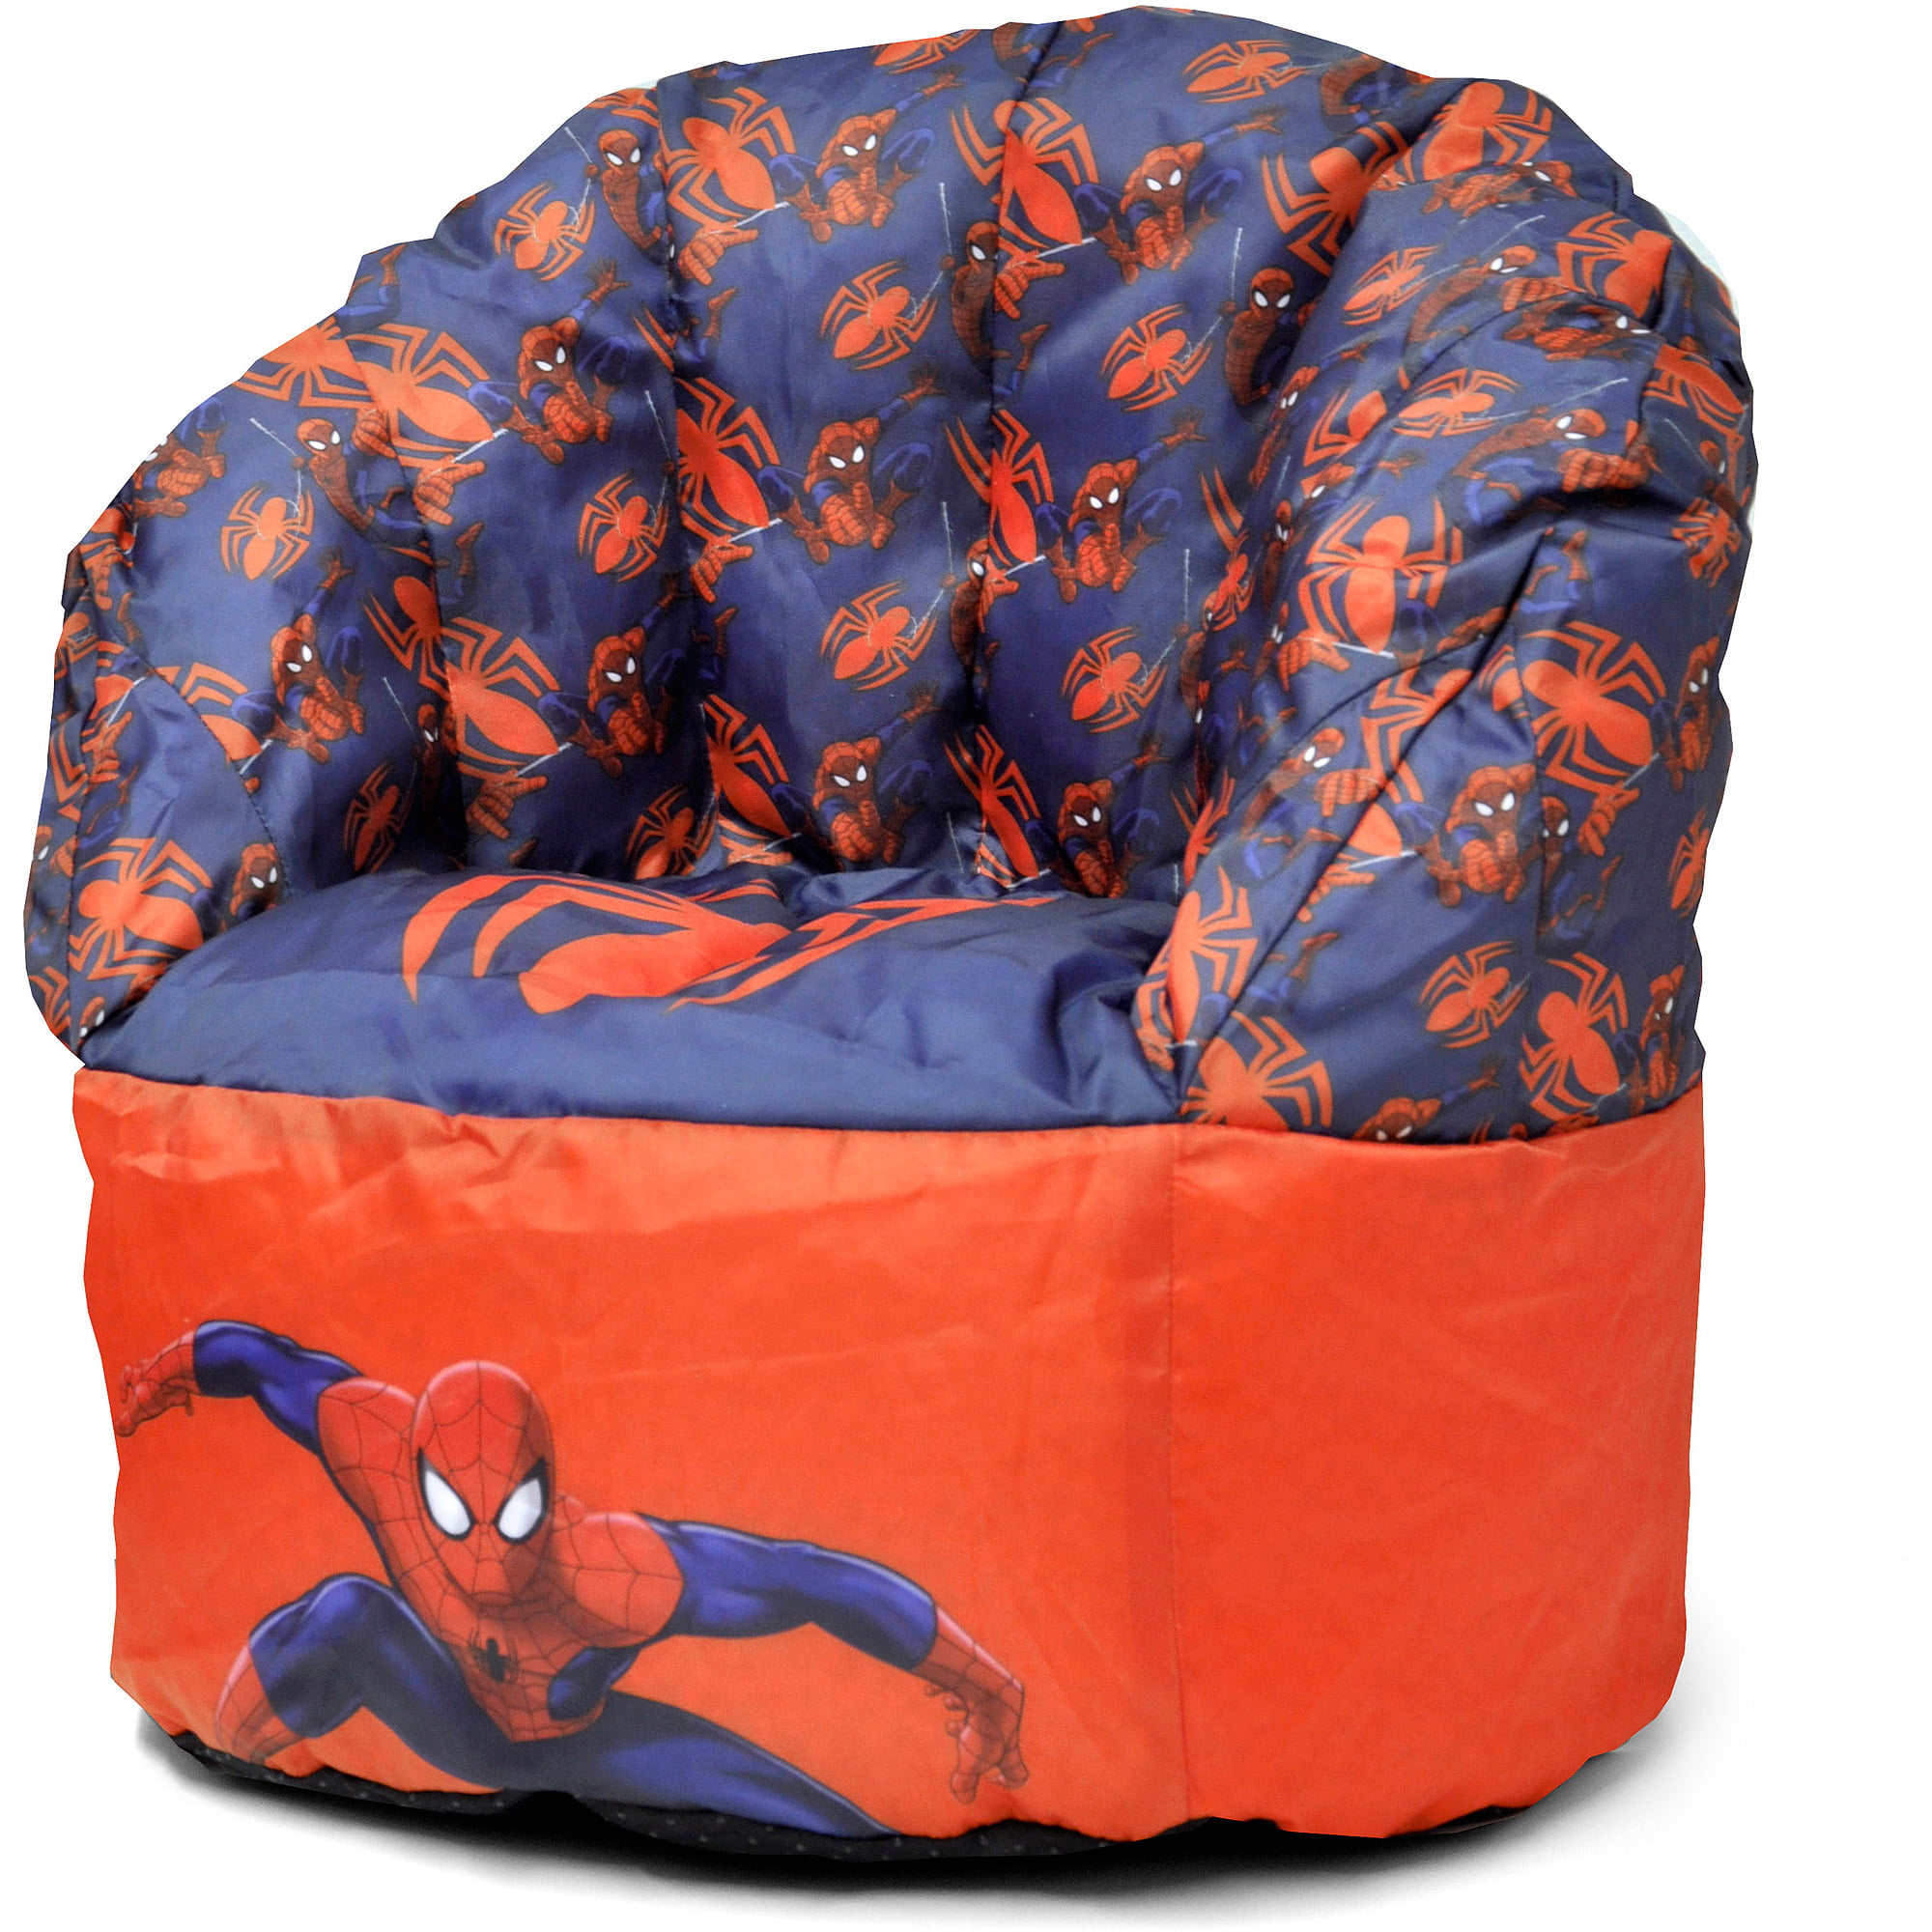 Marvel Spider Man Bean Bag Chair   Walmart.com